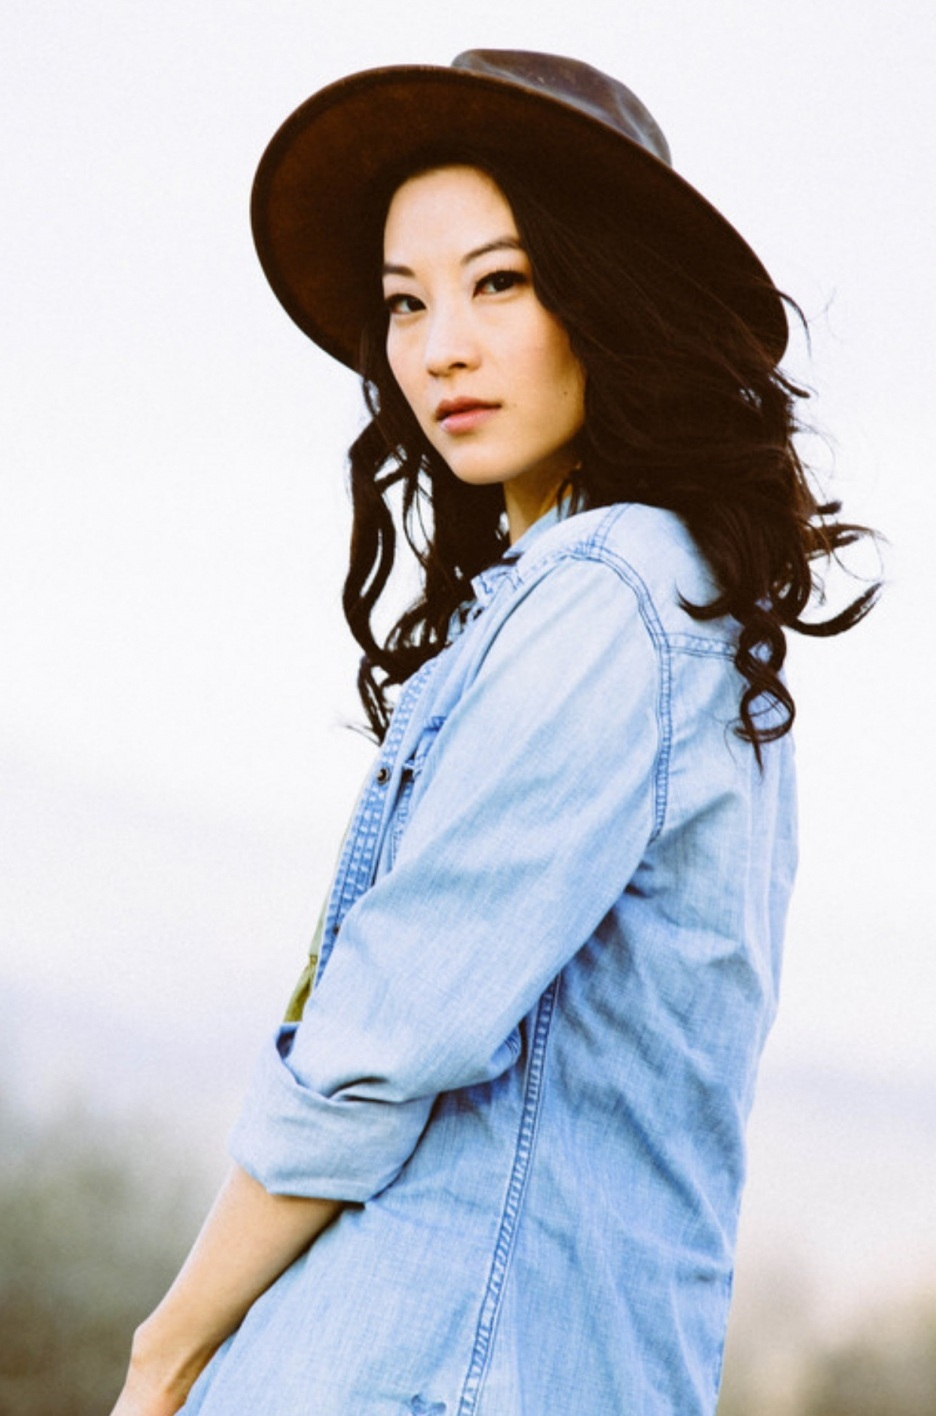 936x1416 - Arden Cho Wallpapers 18